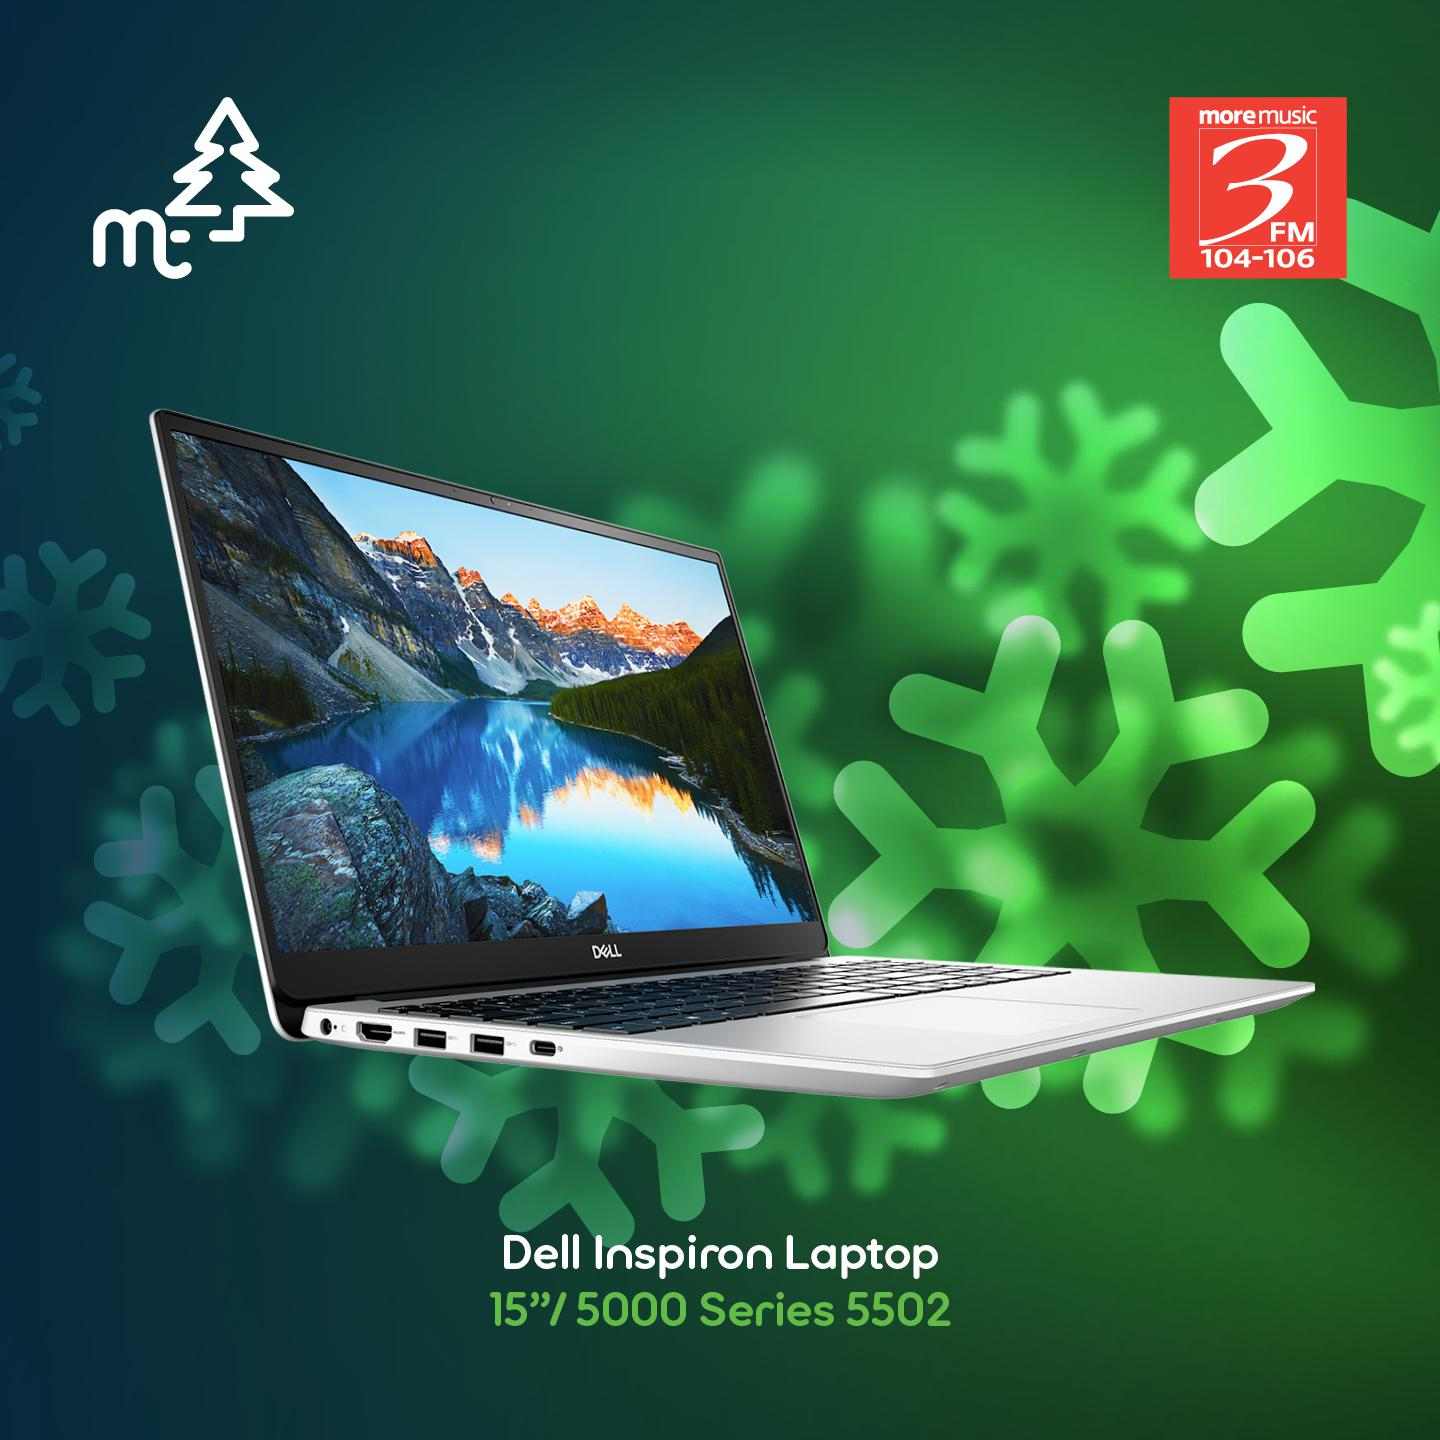 Dell Inspiron Laptop 15inch 5000 Series 5502